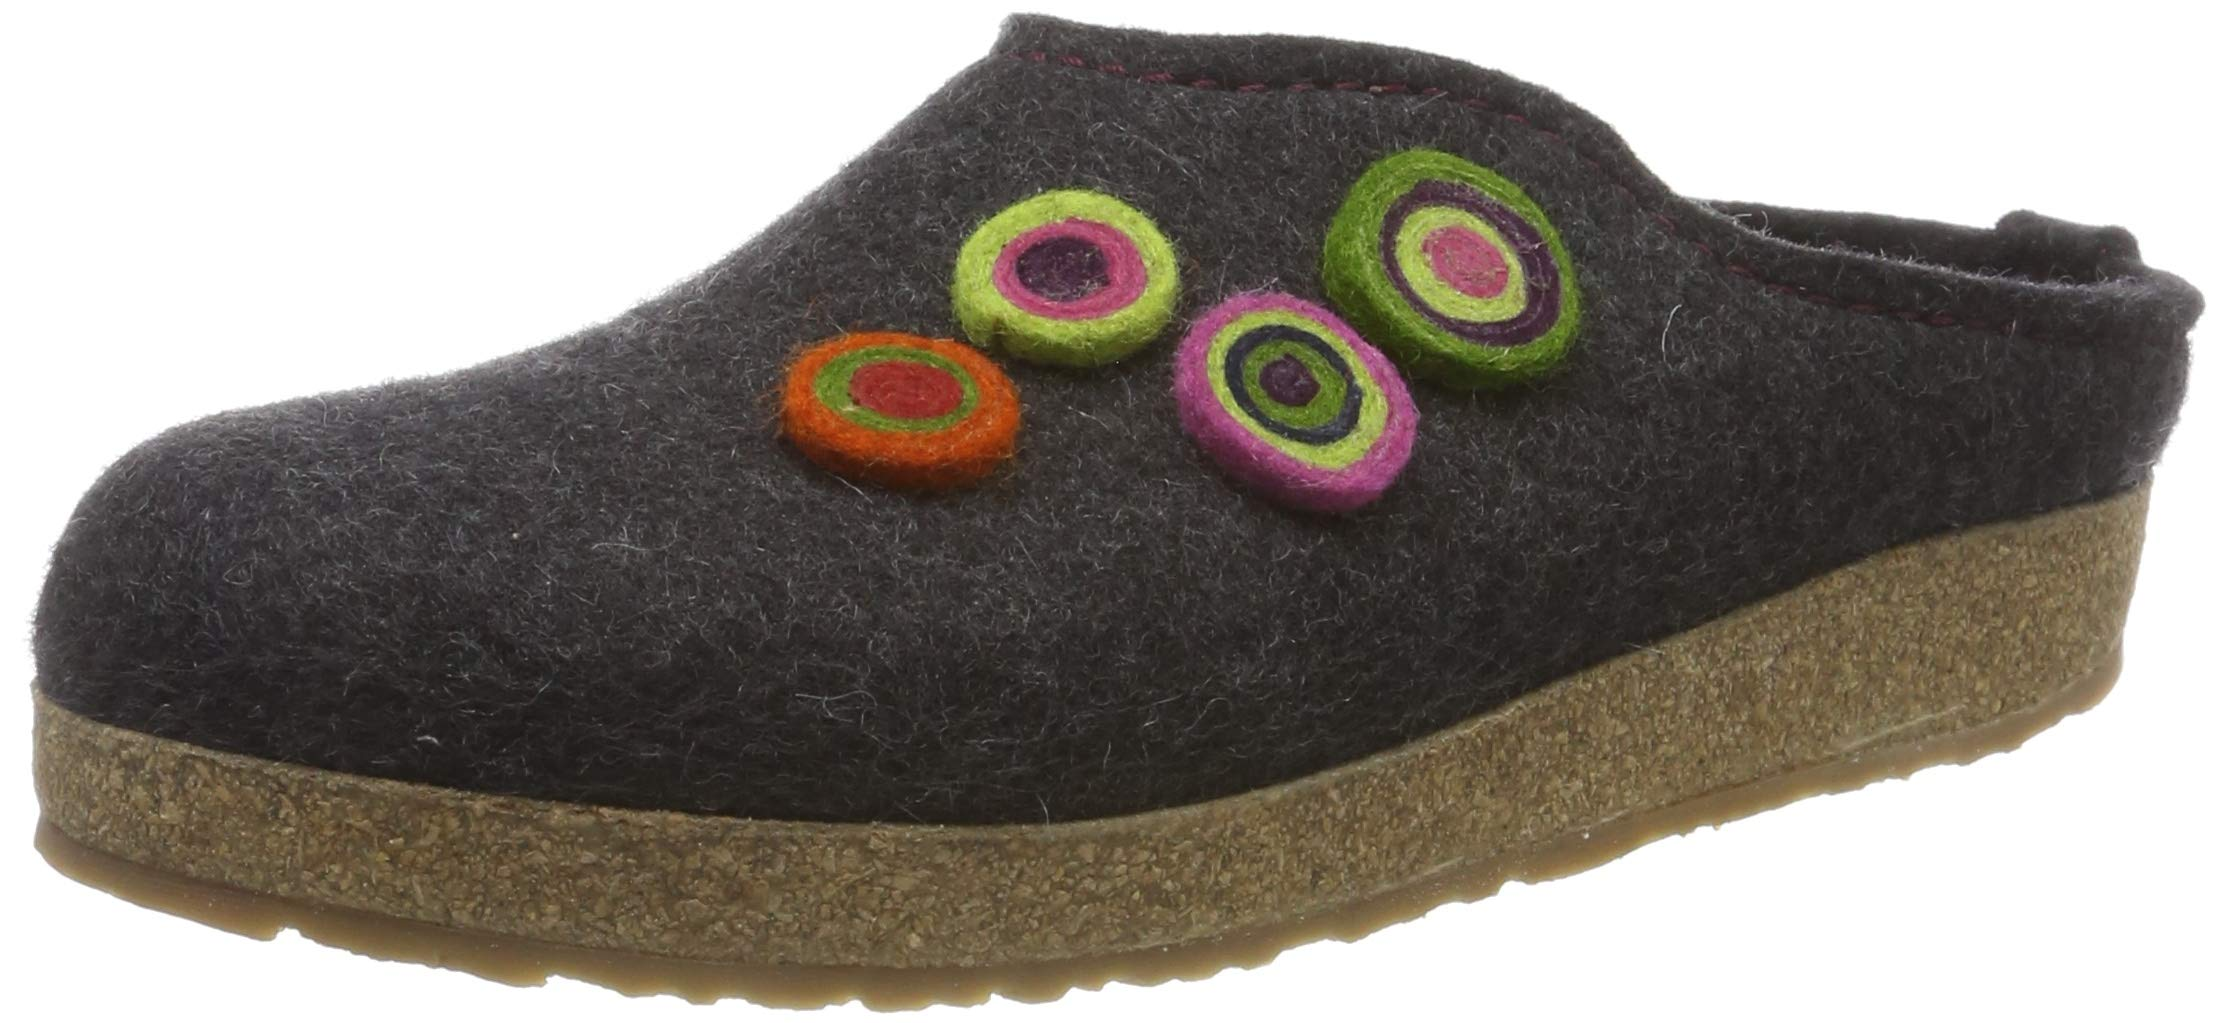 Grizzly KanonChaussons Mules Mixte Haflinger AdulteGrisgraphit 7736 Eu WDHIeE2Y9b